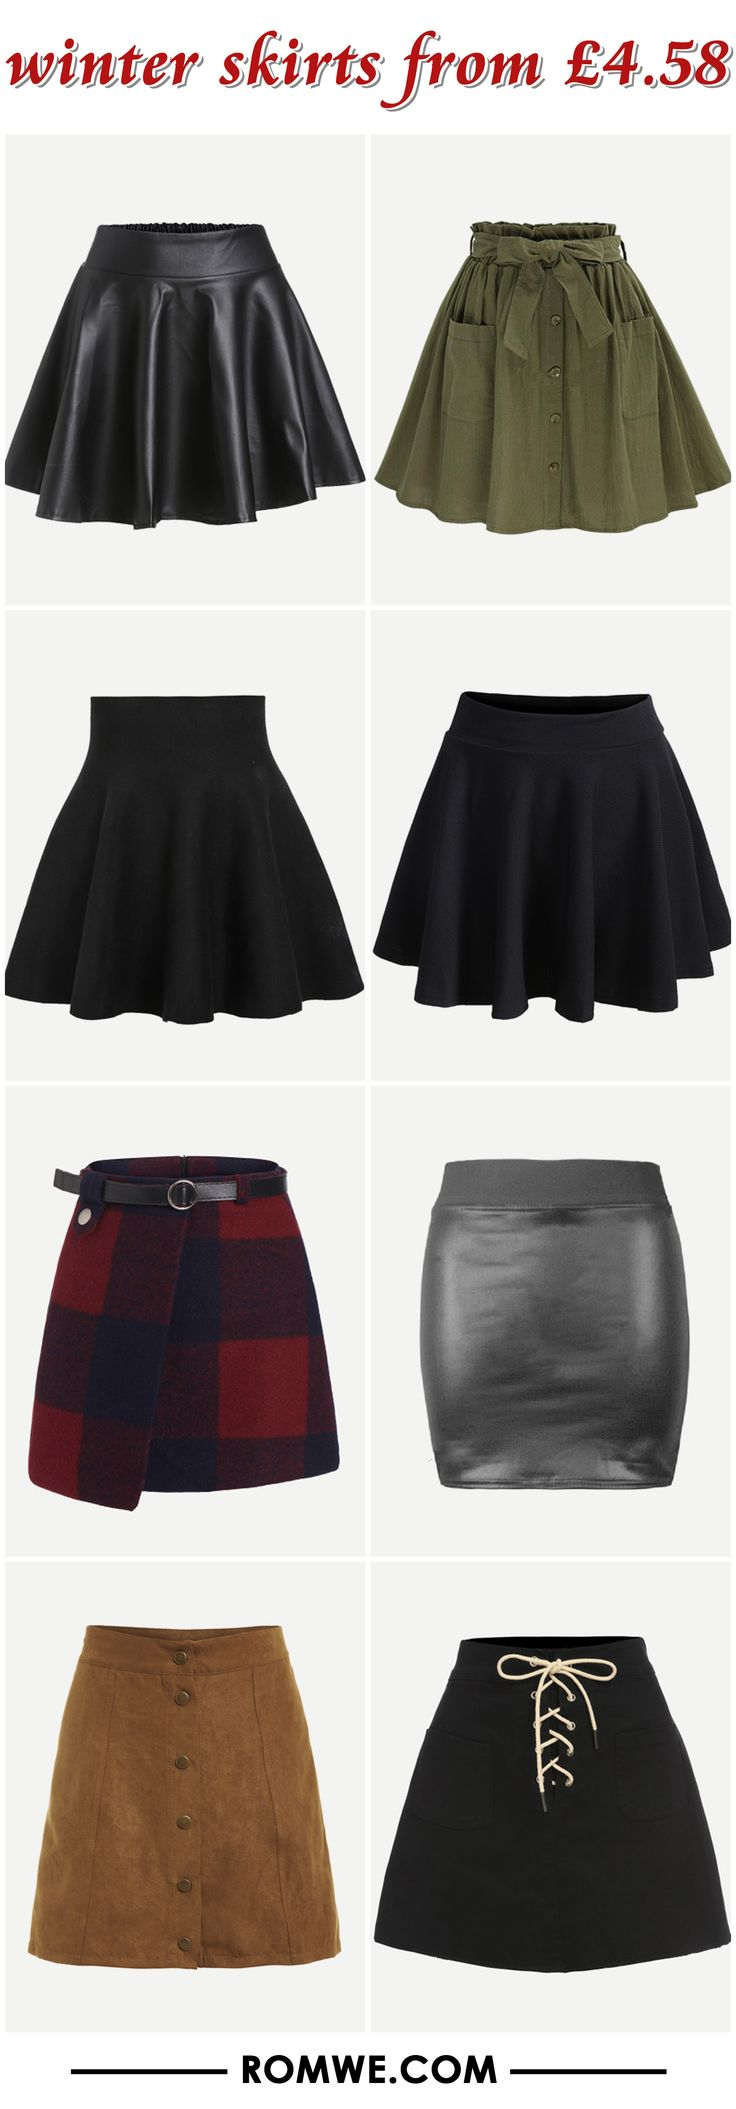 winter skirts from romwe.com